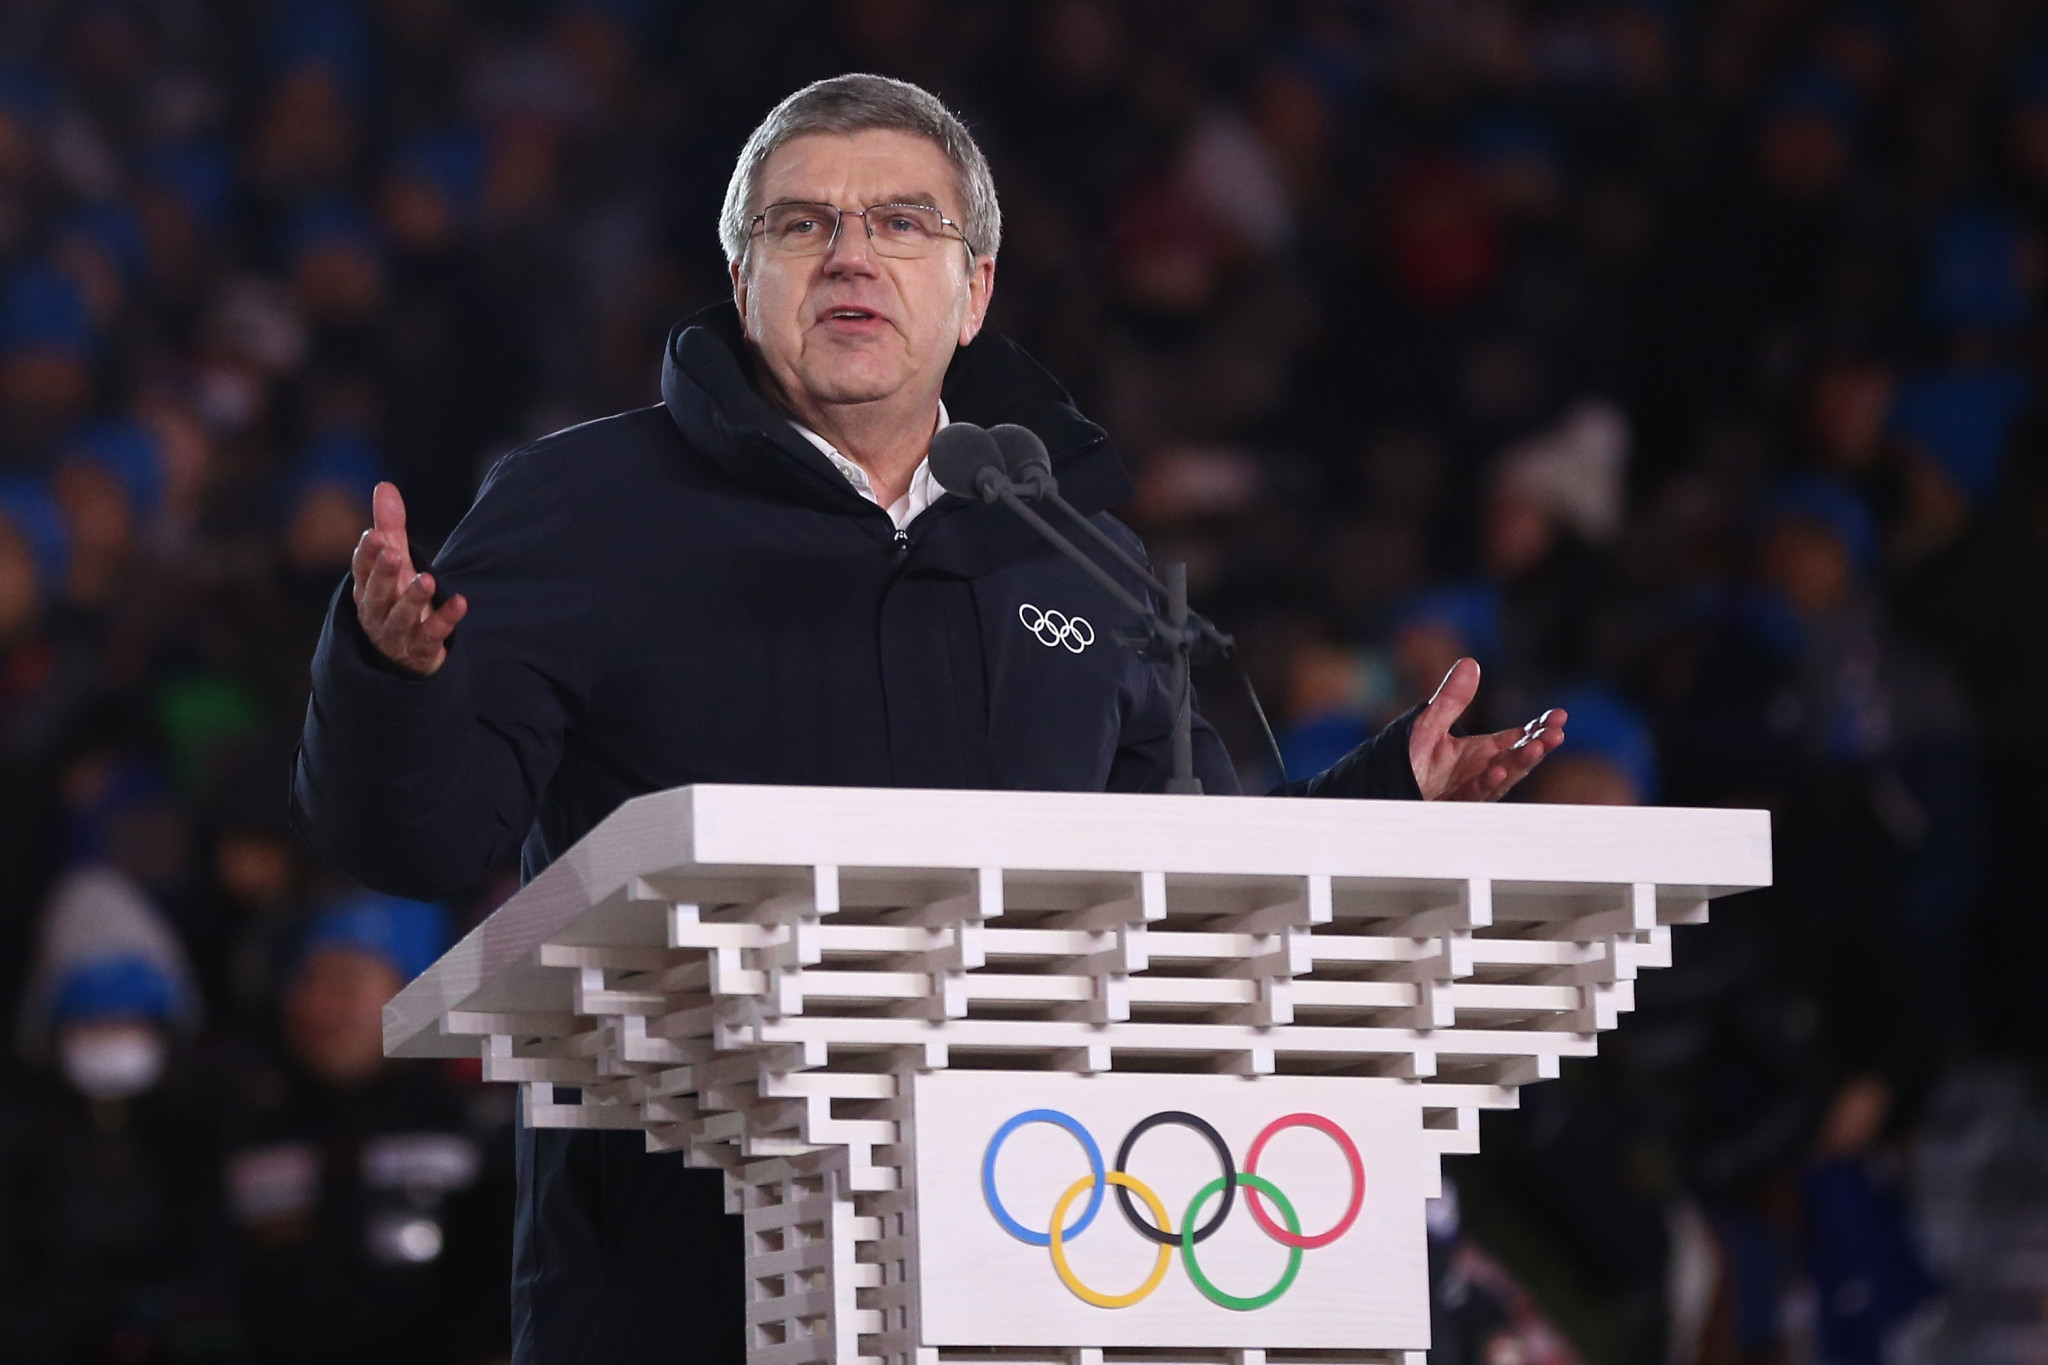 The decision of former DOSB President Thomas Bach, now leading the IOC, to lift Russia's suspension just days after the Closing Ceremony of Pyeongchang 2018 has been criticised in Germany ©Getty Images